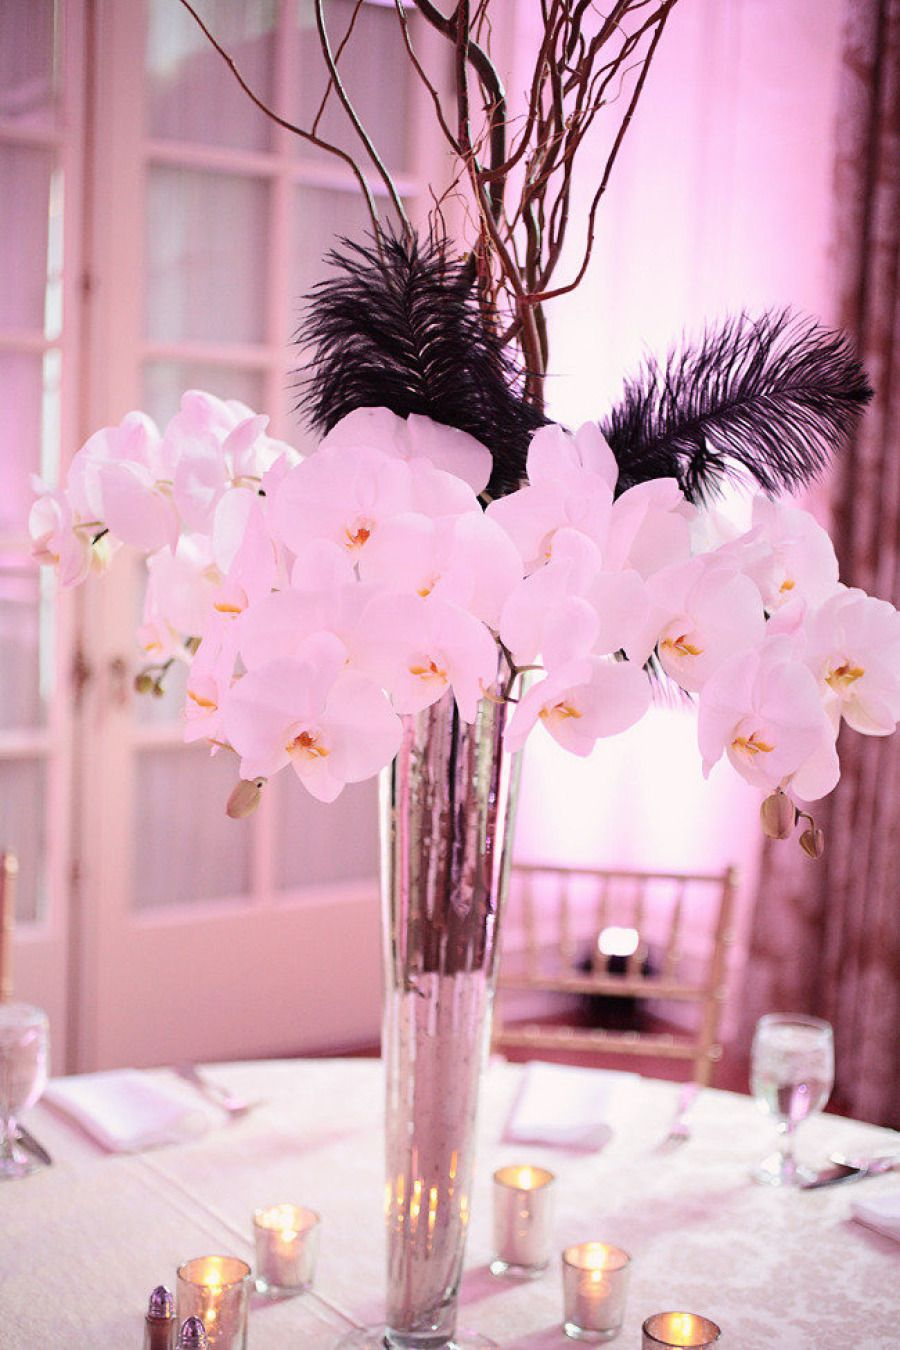 15 Stunning Orchid Themed Wedding Centerpieces Money Cake